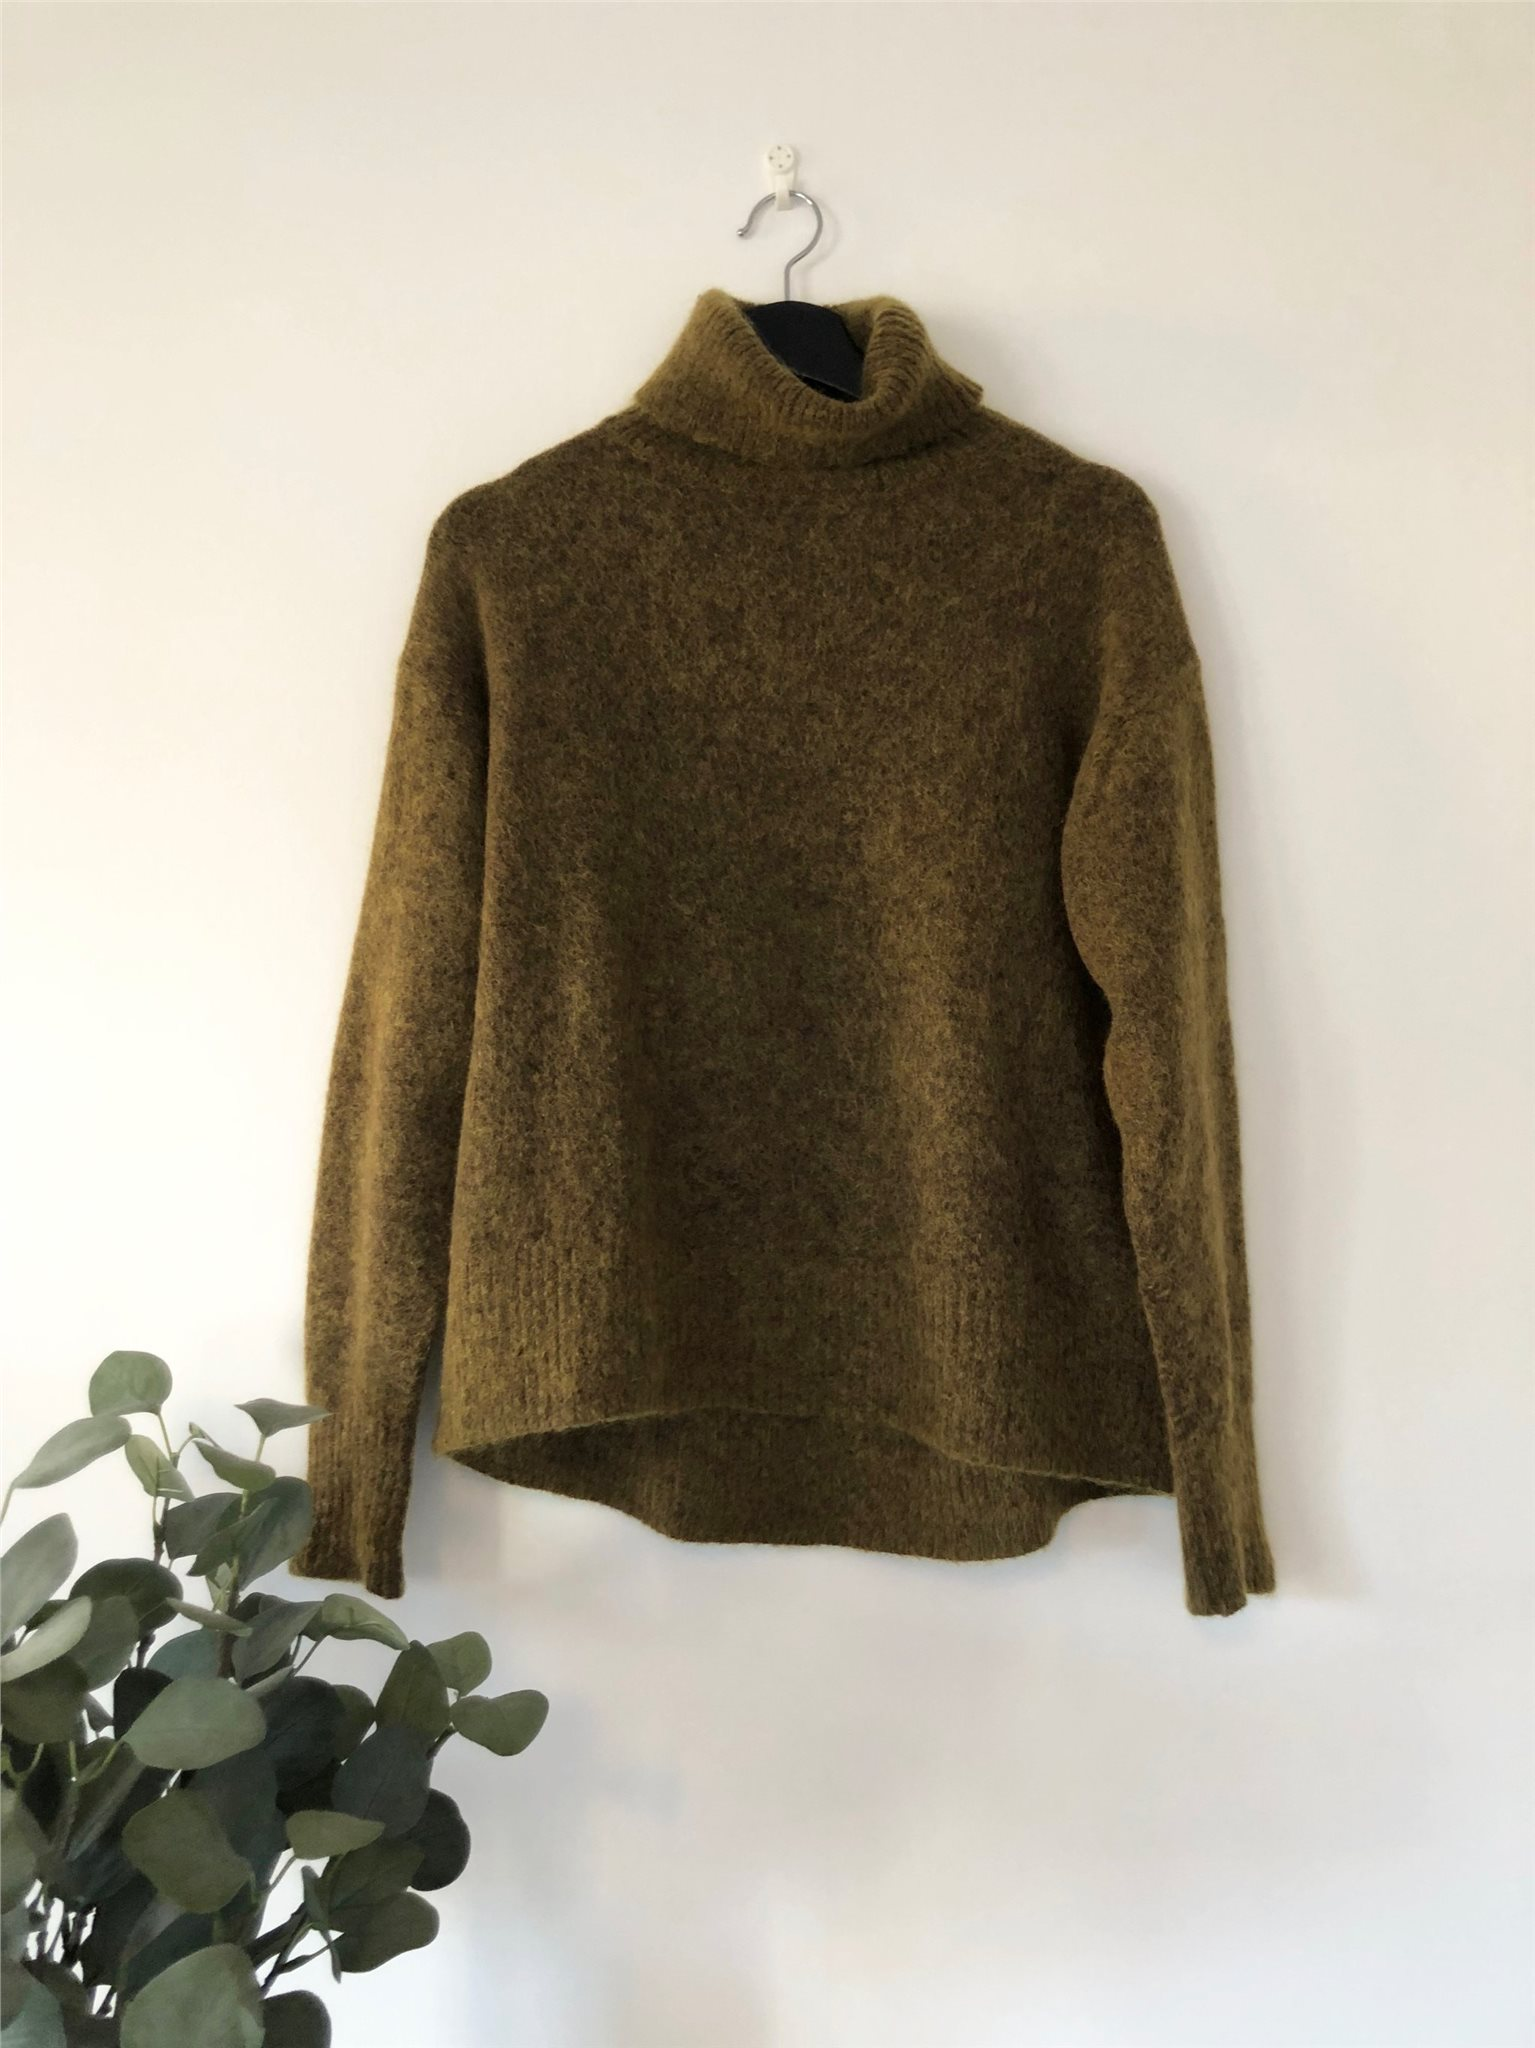 Green wool jumper from H&M Premium, size XS